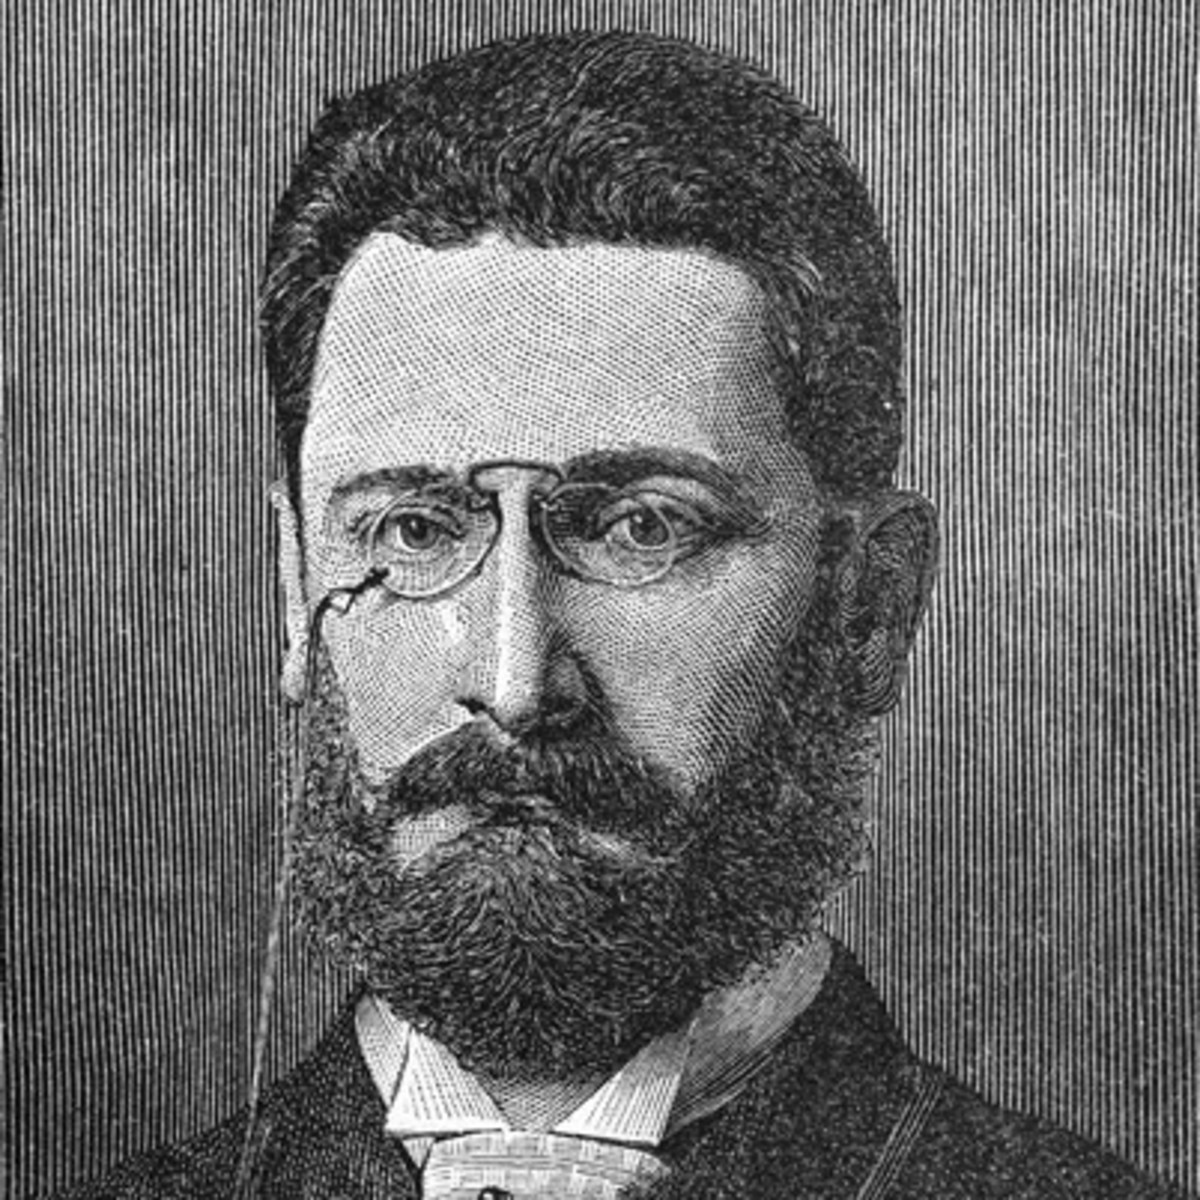 DEVELOPED: Joseph Pulitzer was the father of journalism since 1887.